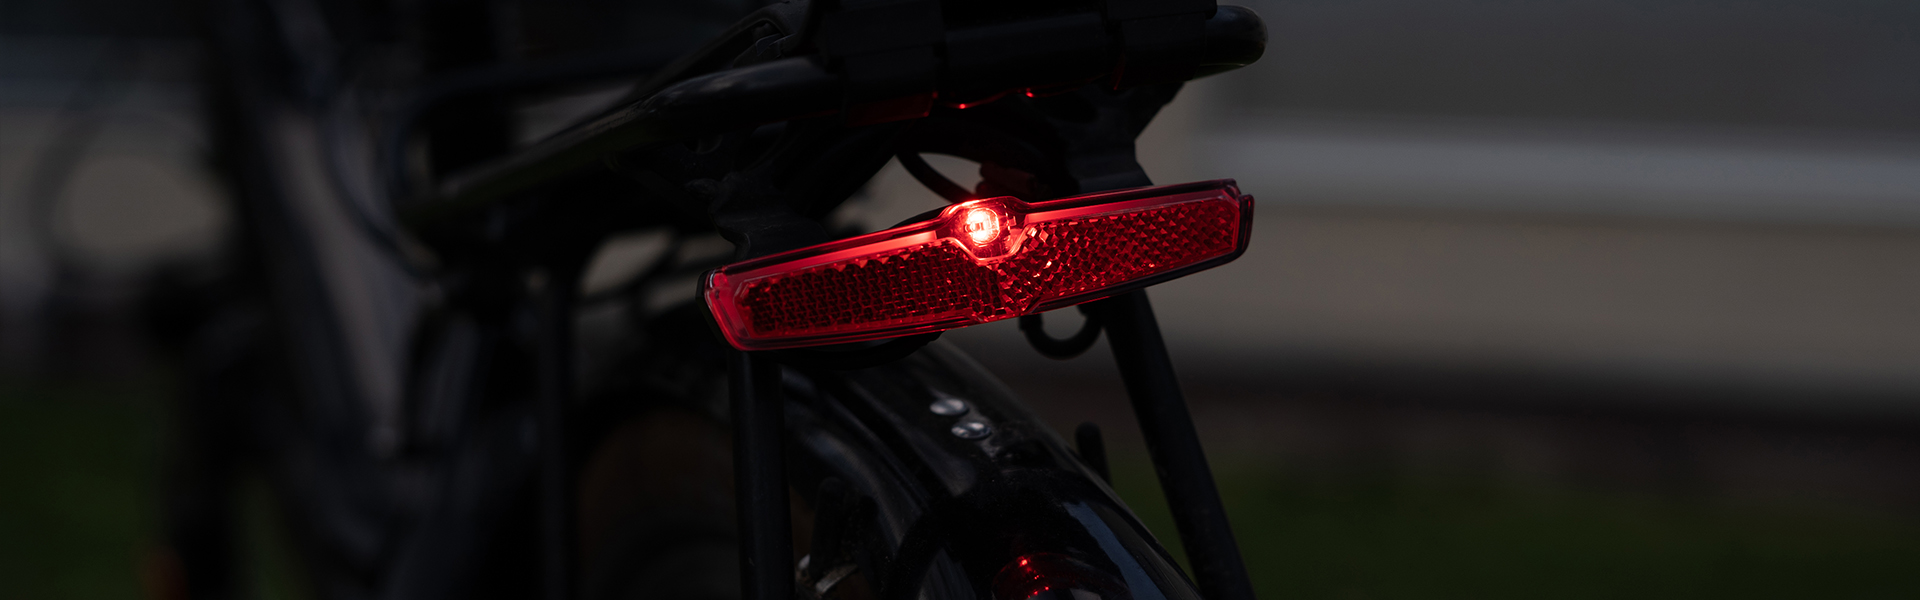 LF-05 Sate-Lite USB rechargeable bicycle head light with twin lens